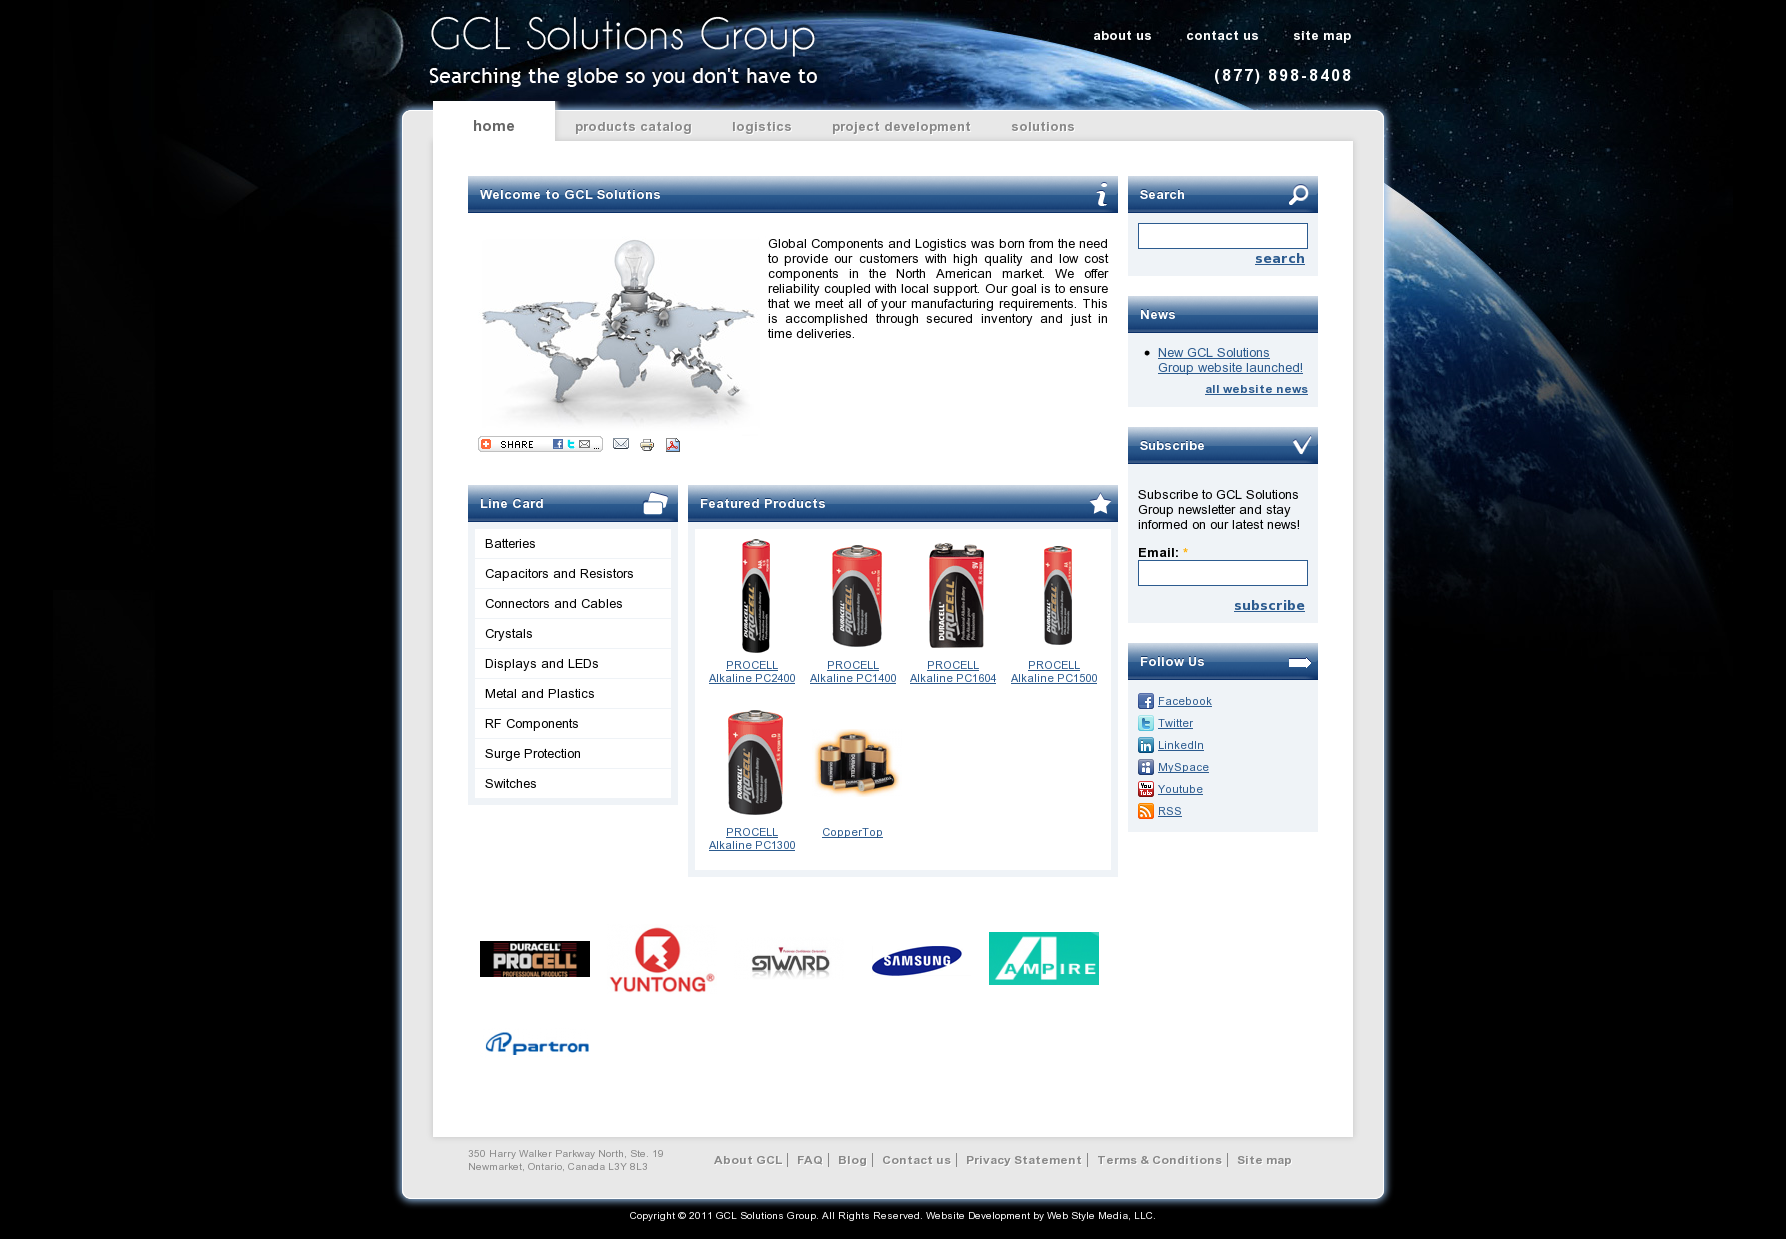 GCL Solutions